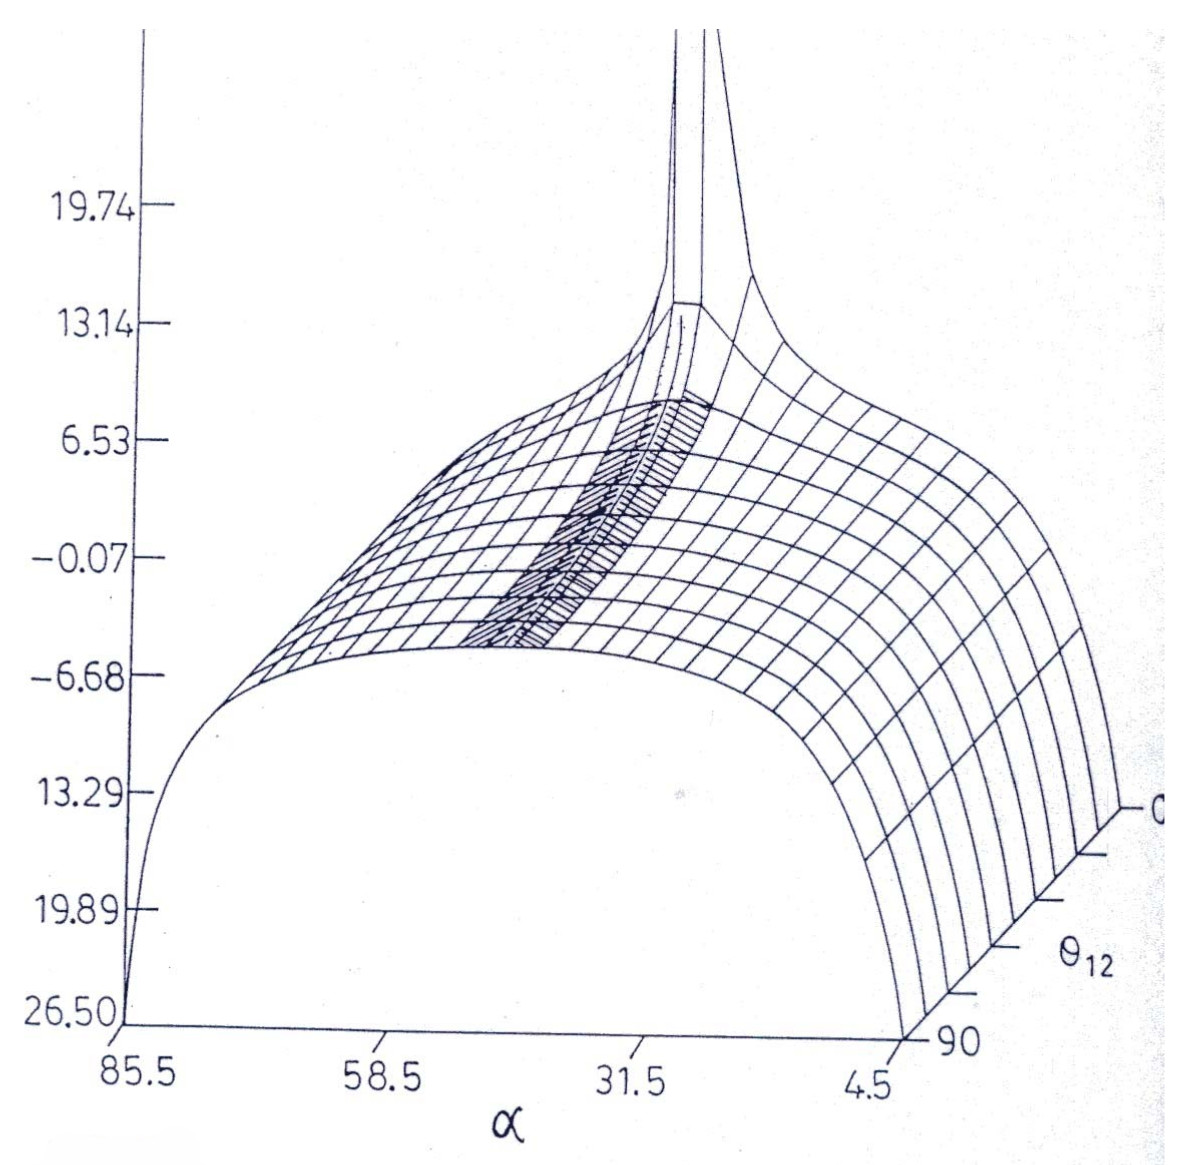 http://static-content.springer.com/image/art%3A10.1186%2F1754-0429-2-2/MediaObjects/13067_2009_Article_22_Fig5_HTML.jpg